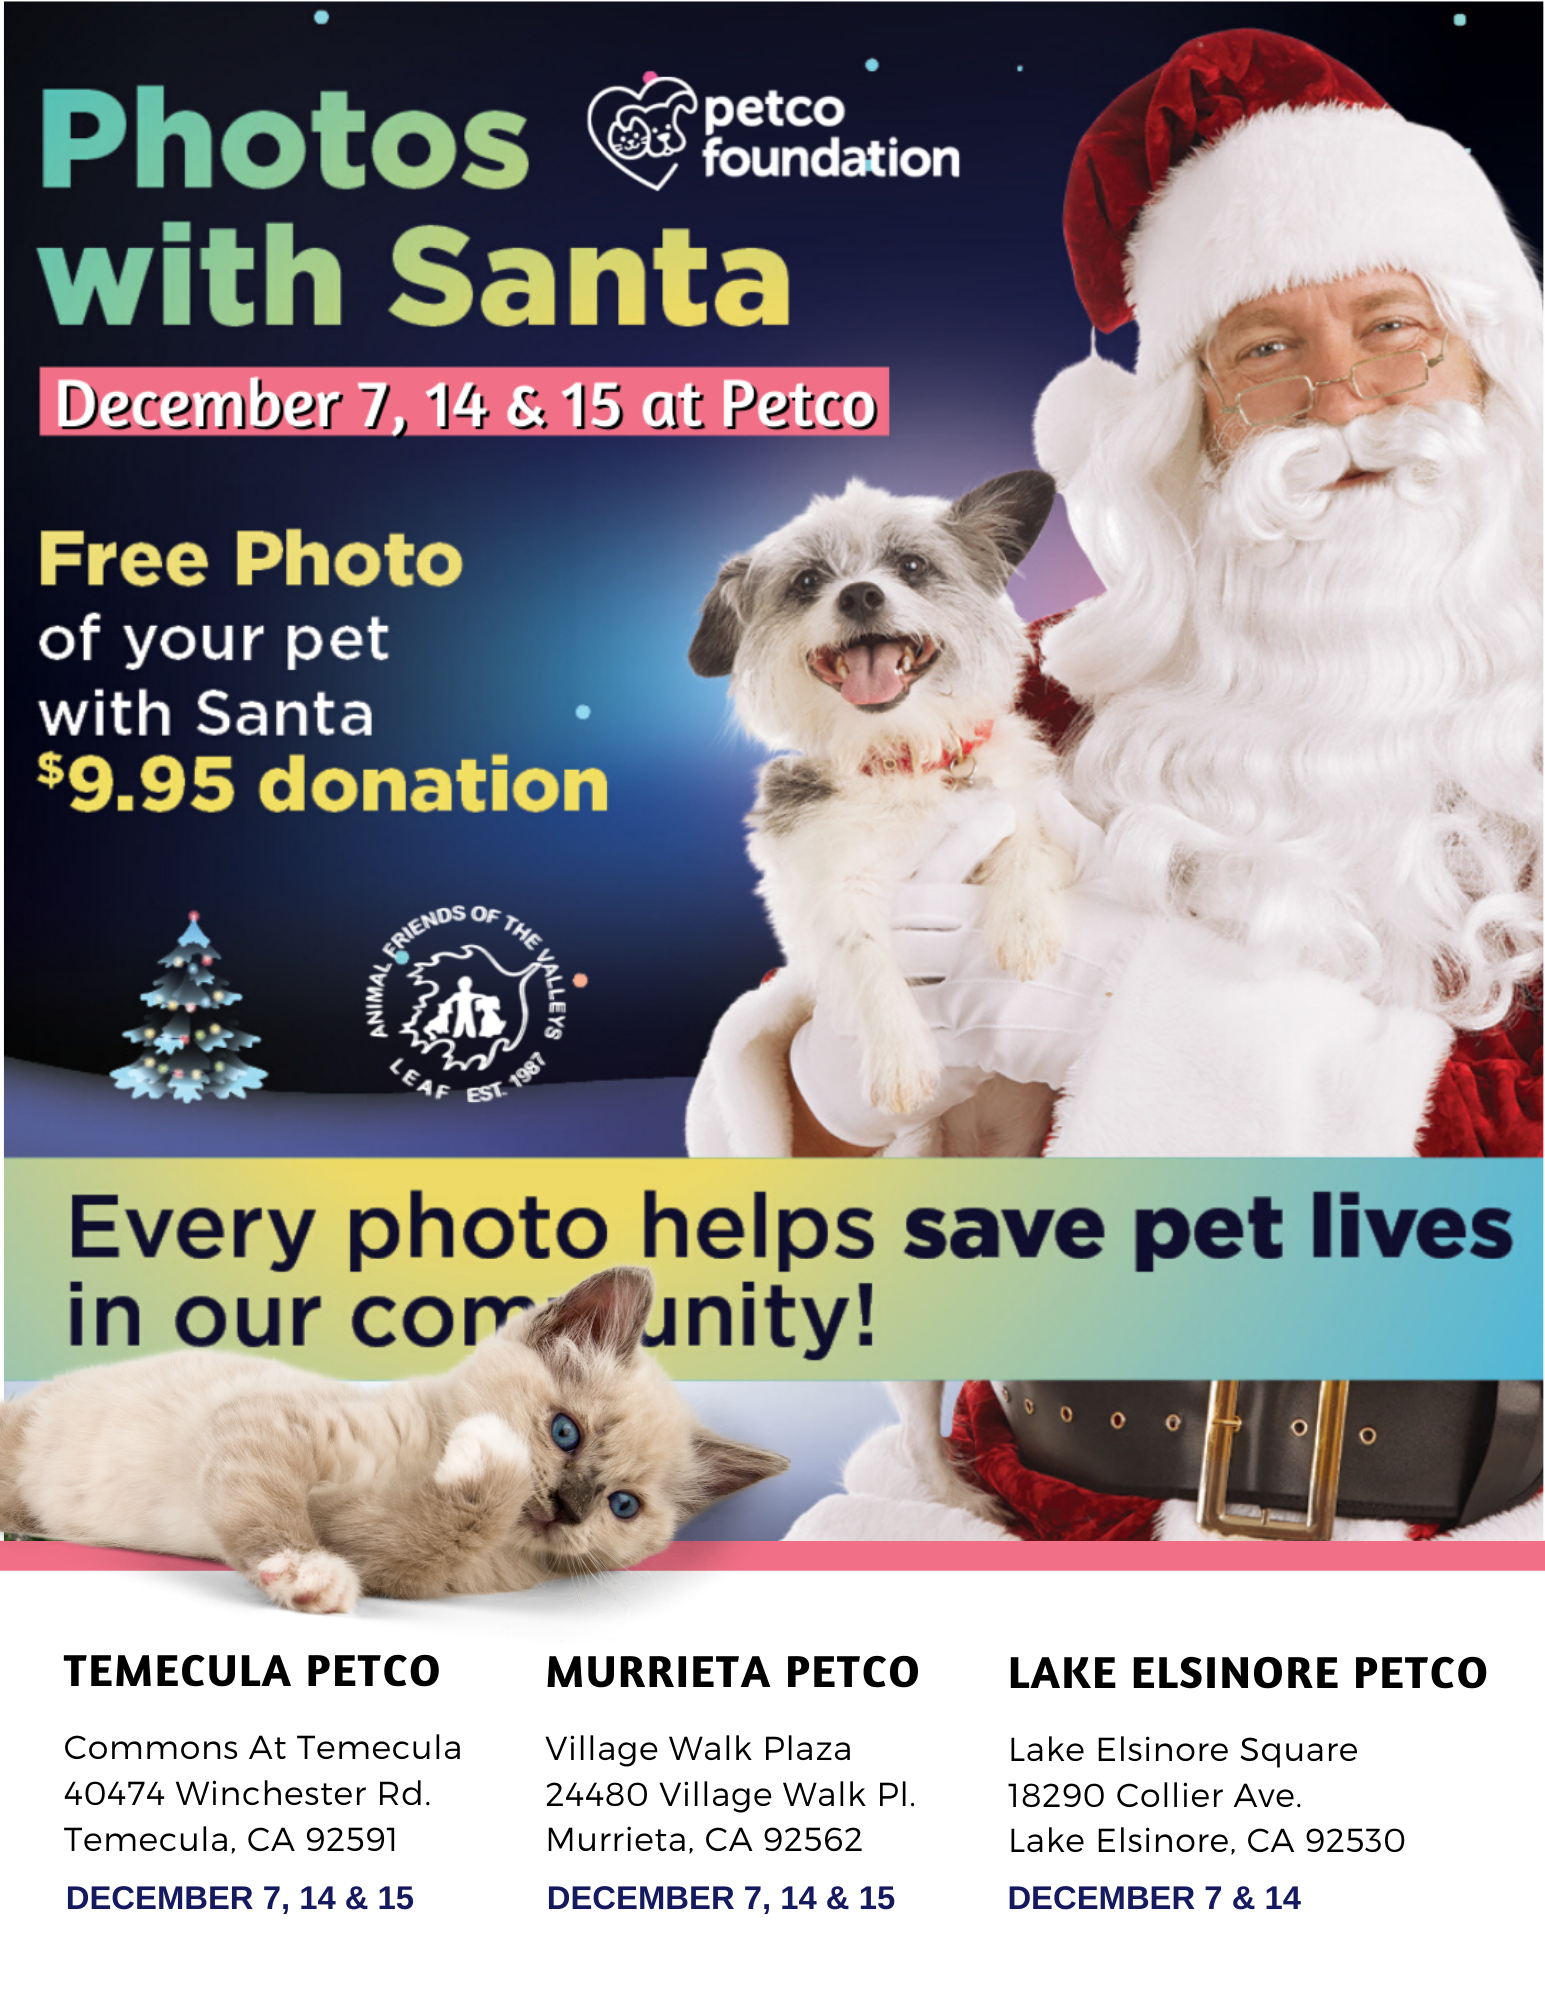 Petco Photos with Santa